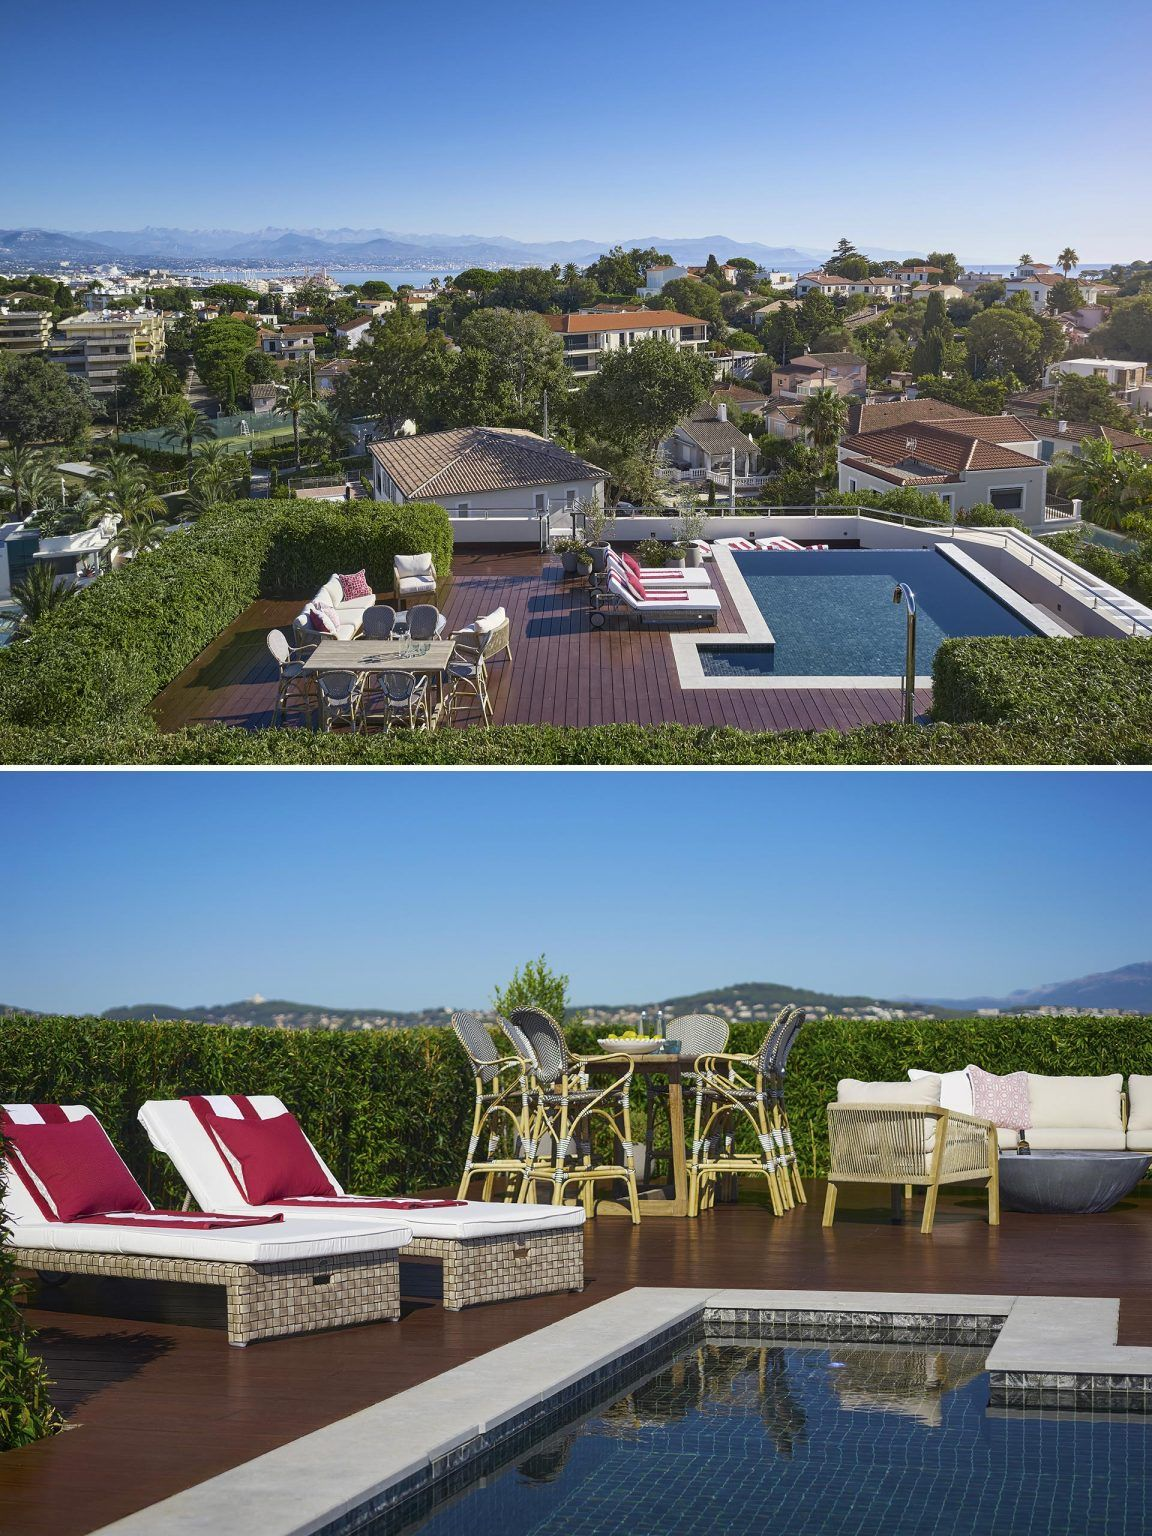 An Exceptional Rooftop Pool And Terrace Was Placed On Top Of This Apartment Rooftop Pool Apartment Rooftop Terrace